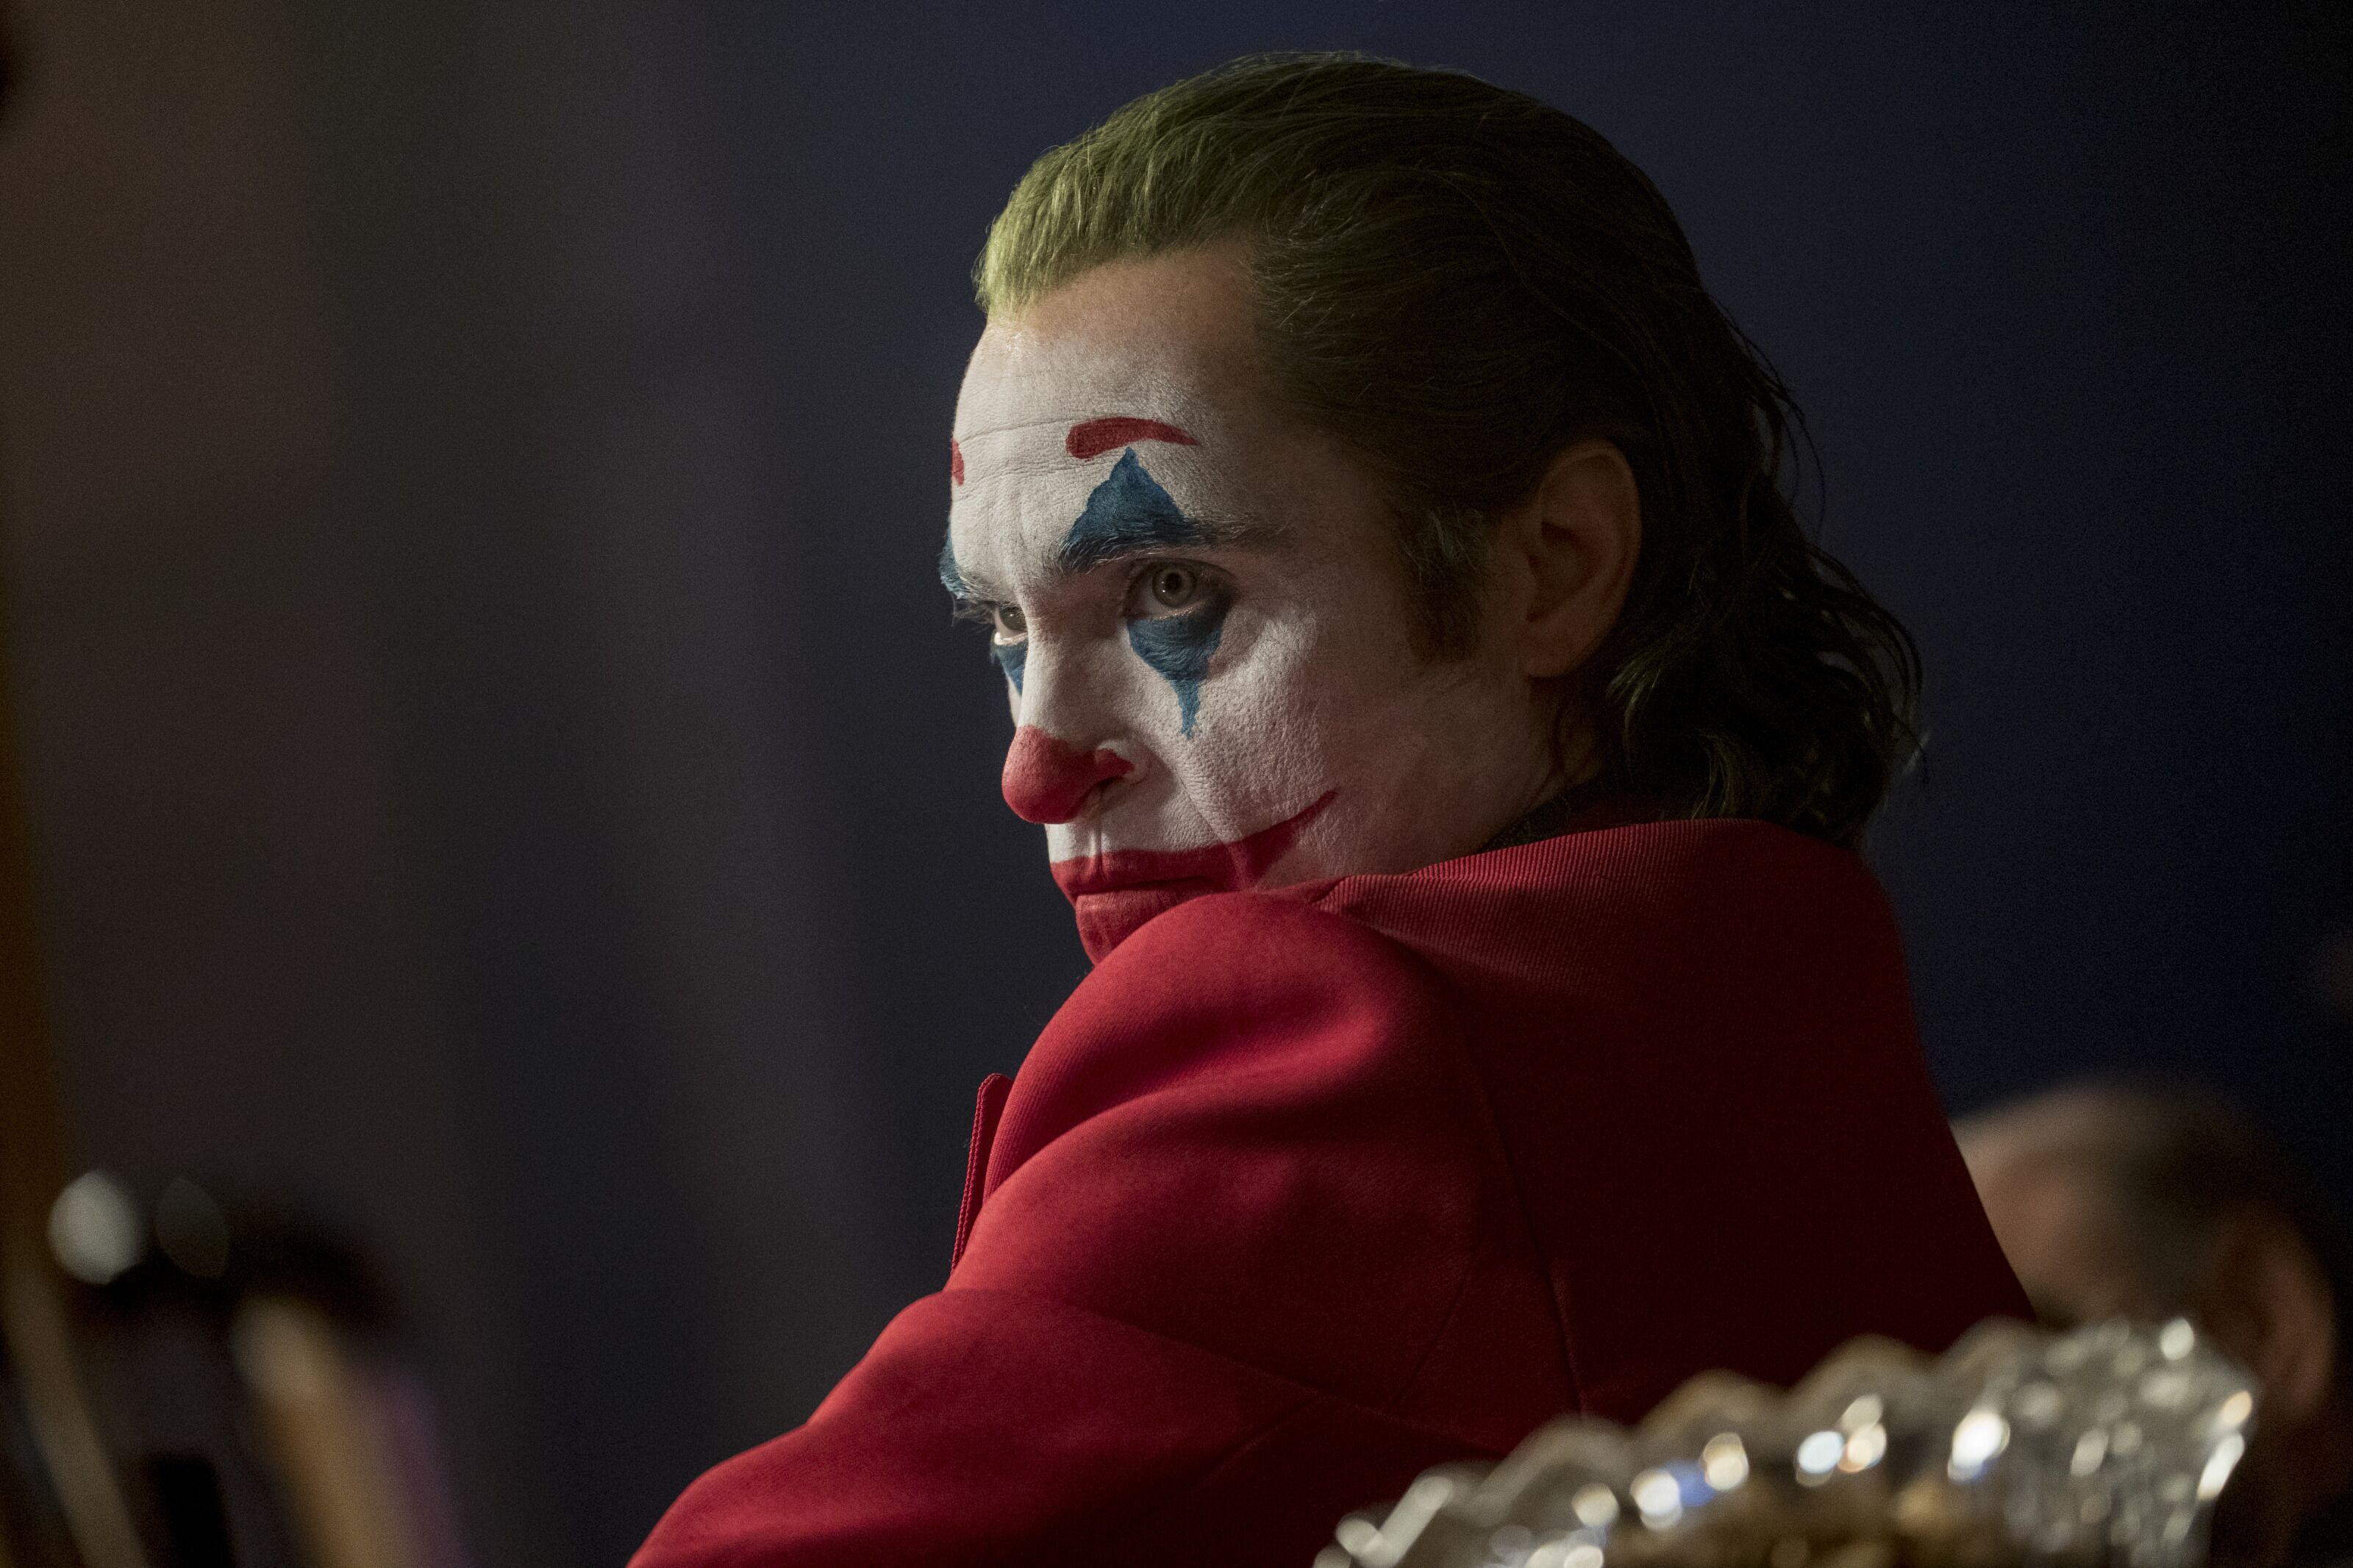 Why so serious?: Why are we all so scared of Joker?